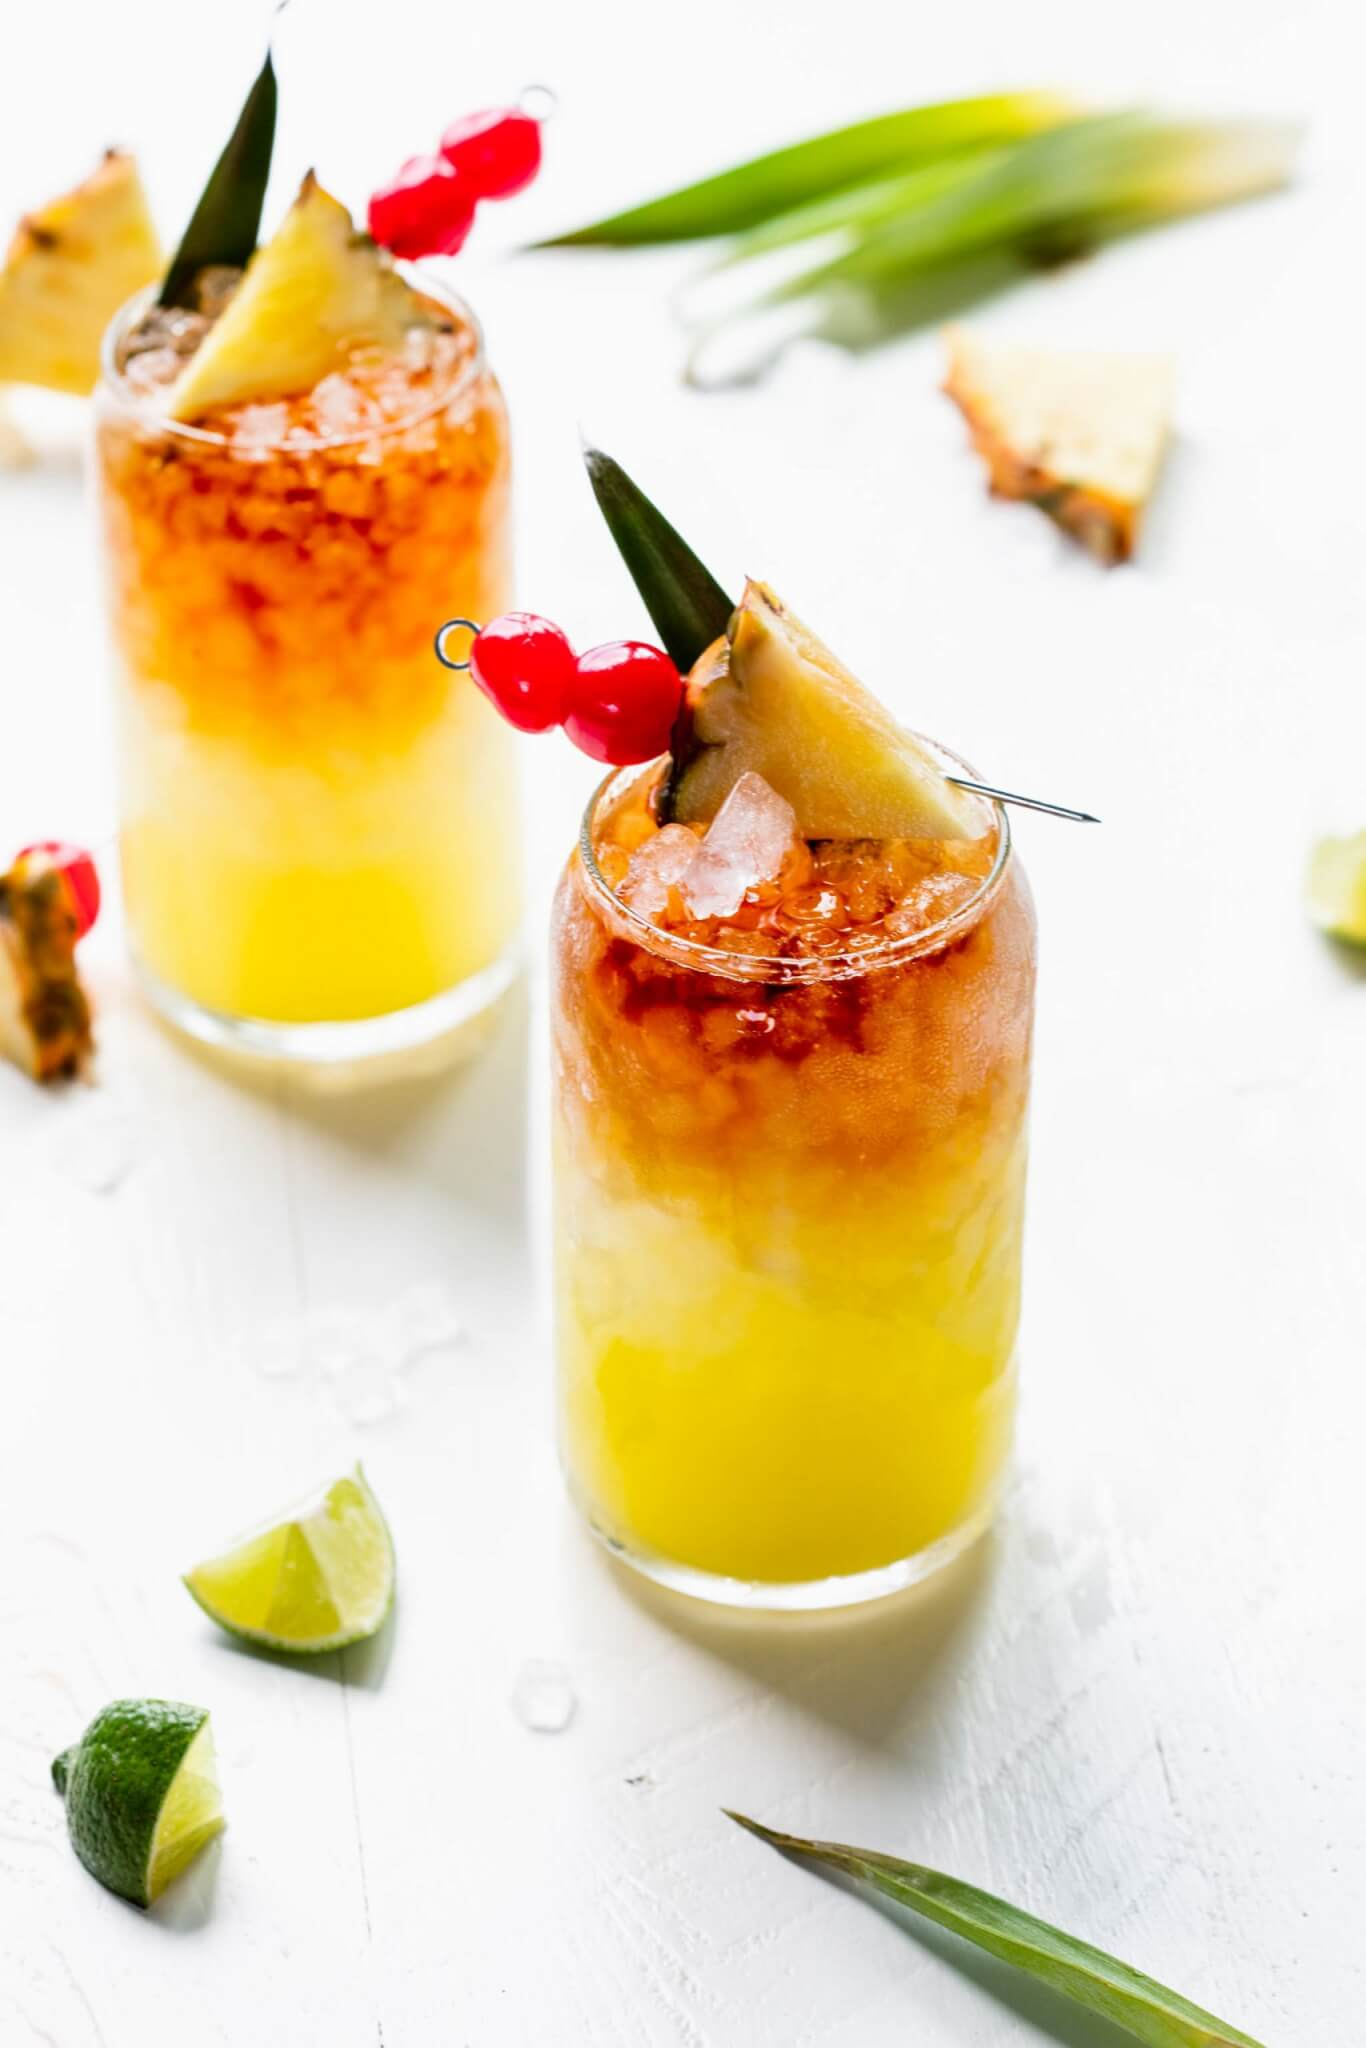 Two Mai tai cocktails in glass garnished with pineapple wedge and cherries.